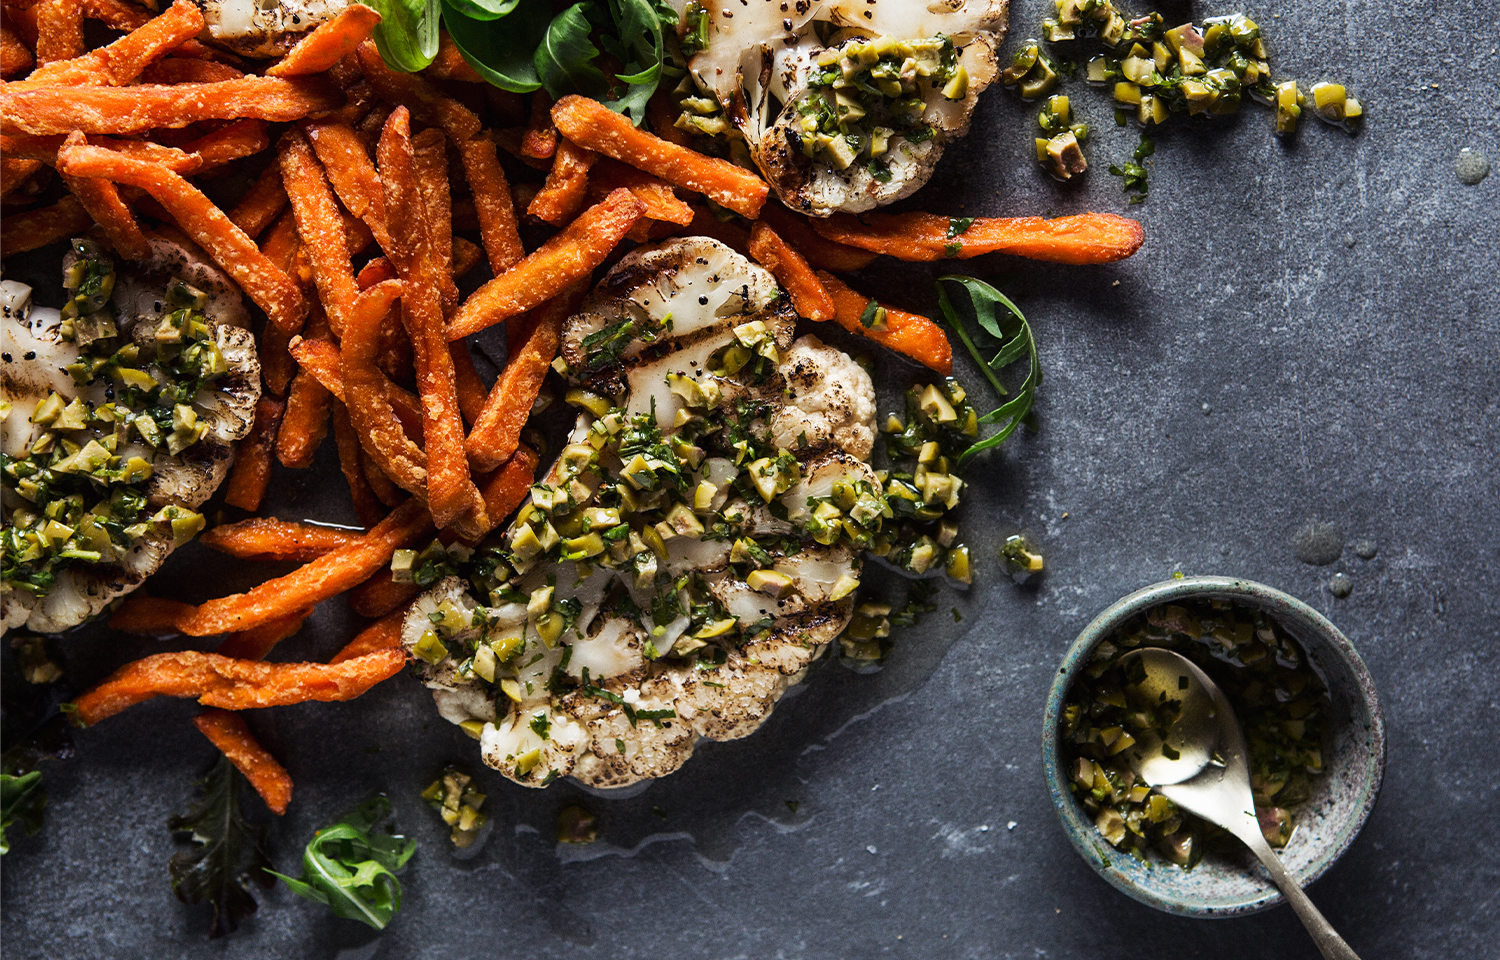 Cauliflower Steaks with Olive and Herb Salsa